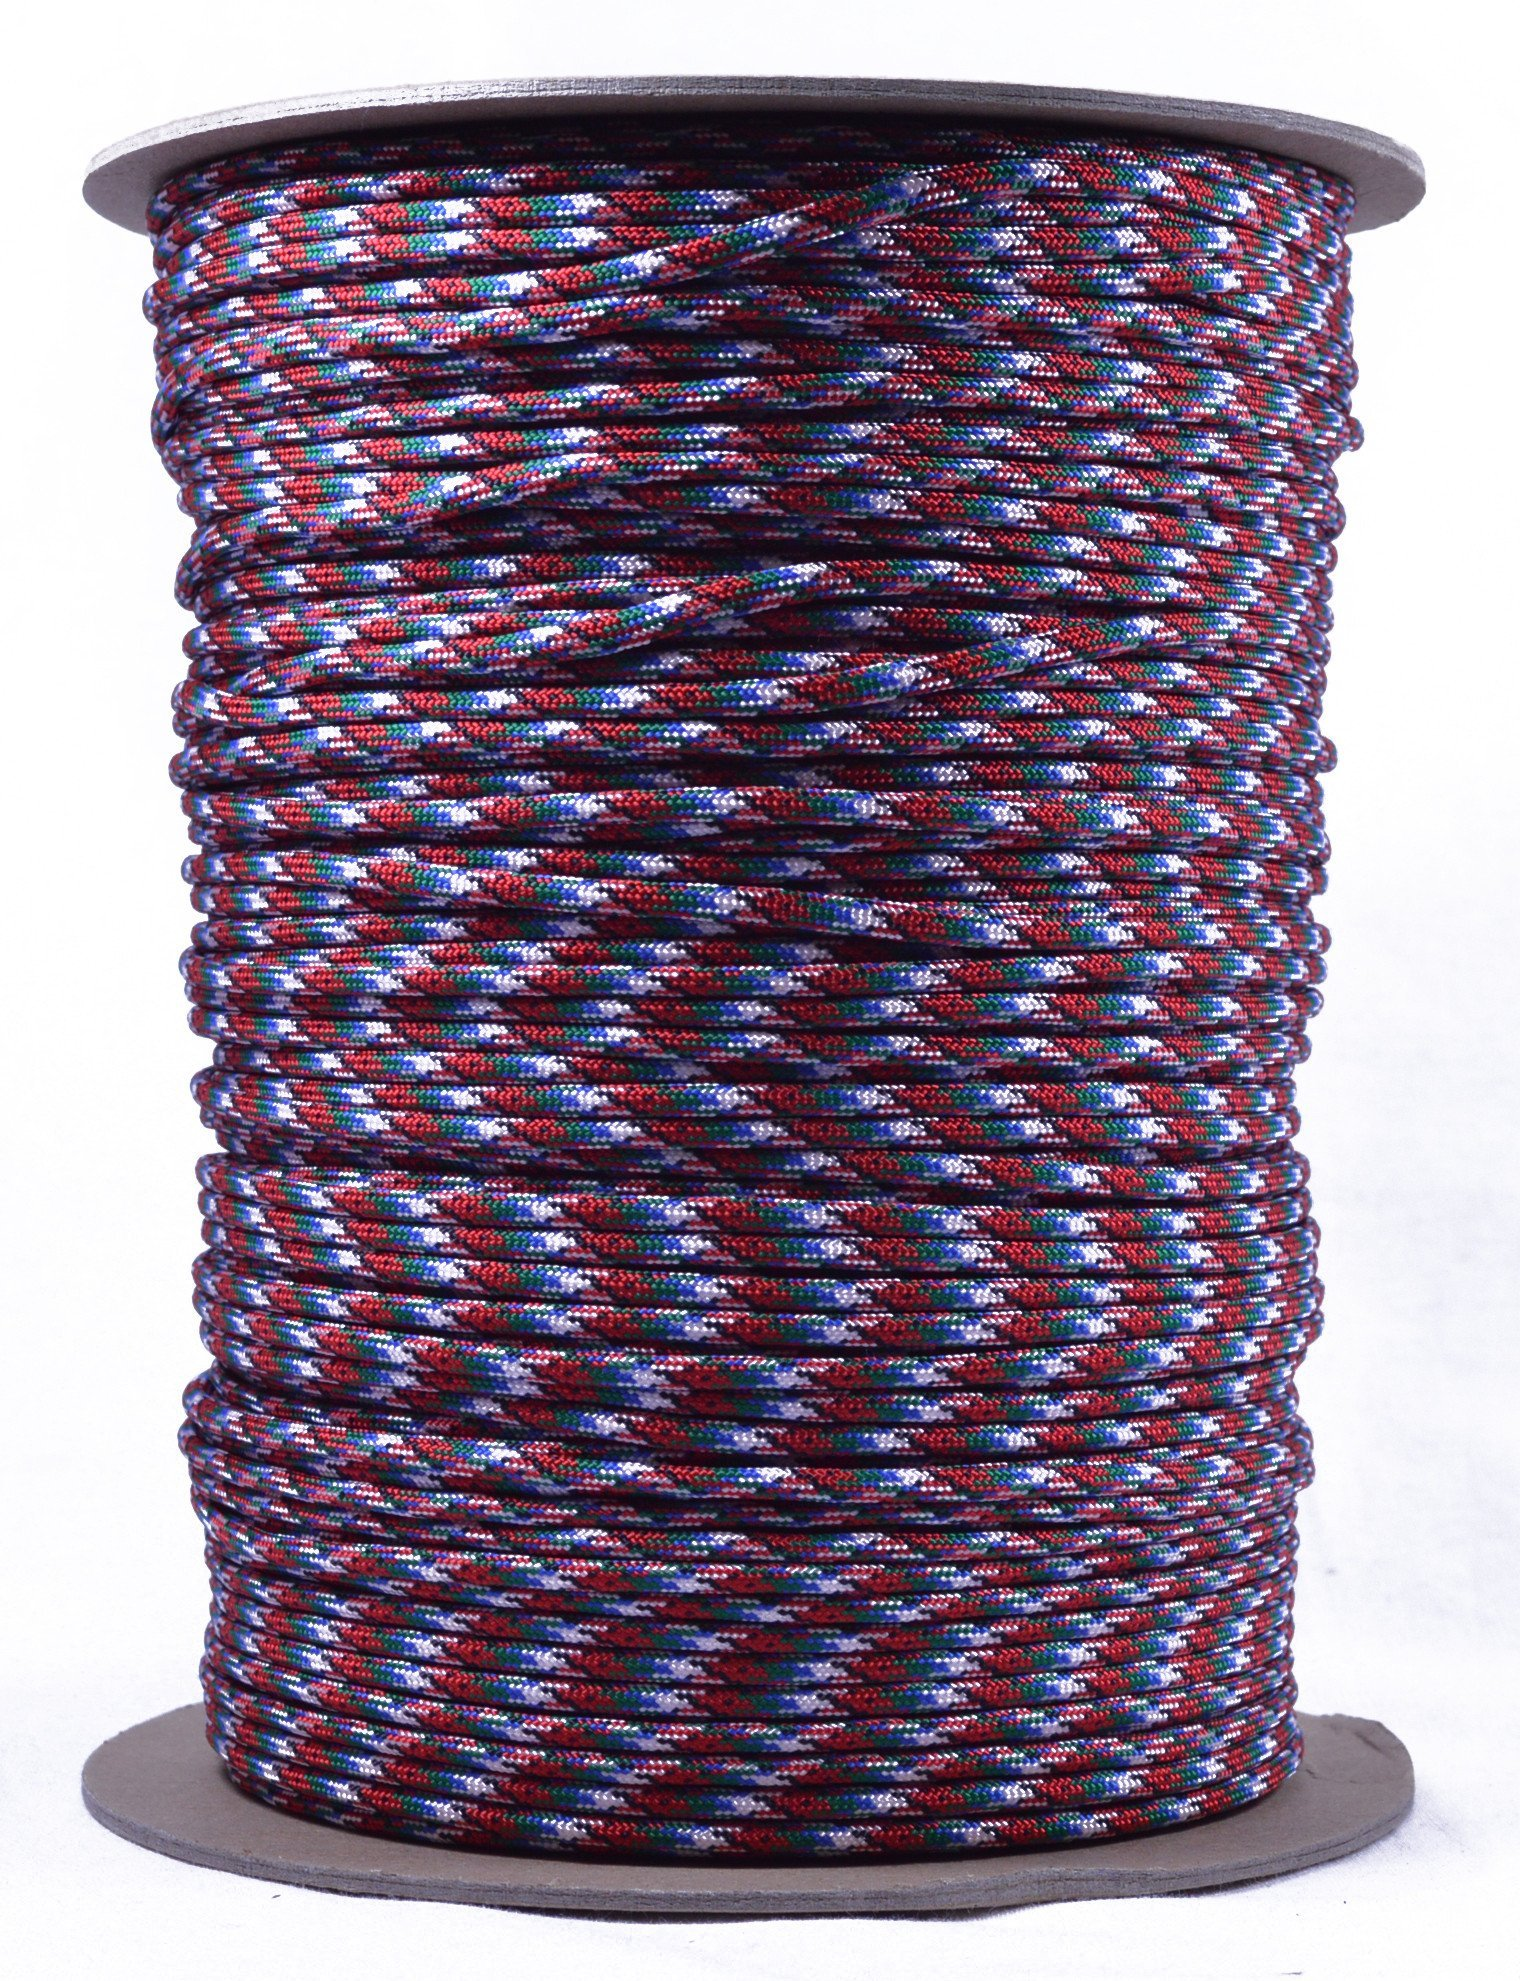 BoredParacord Brand Paracord (1000 ft. Spool) - Afghanistan Veteran 2 by BoredParacord (Image #1)